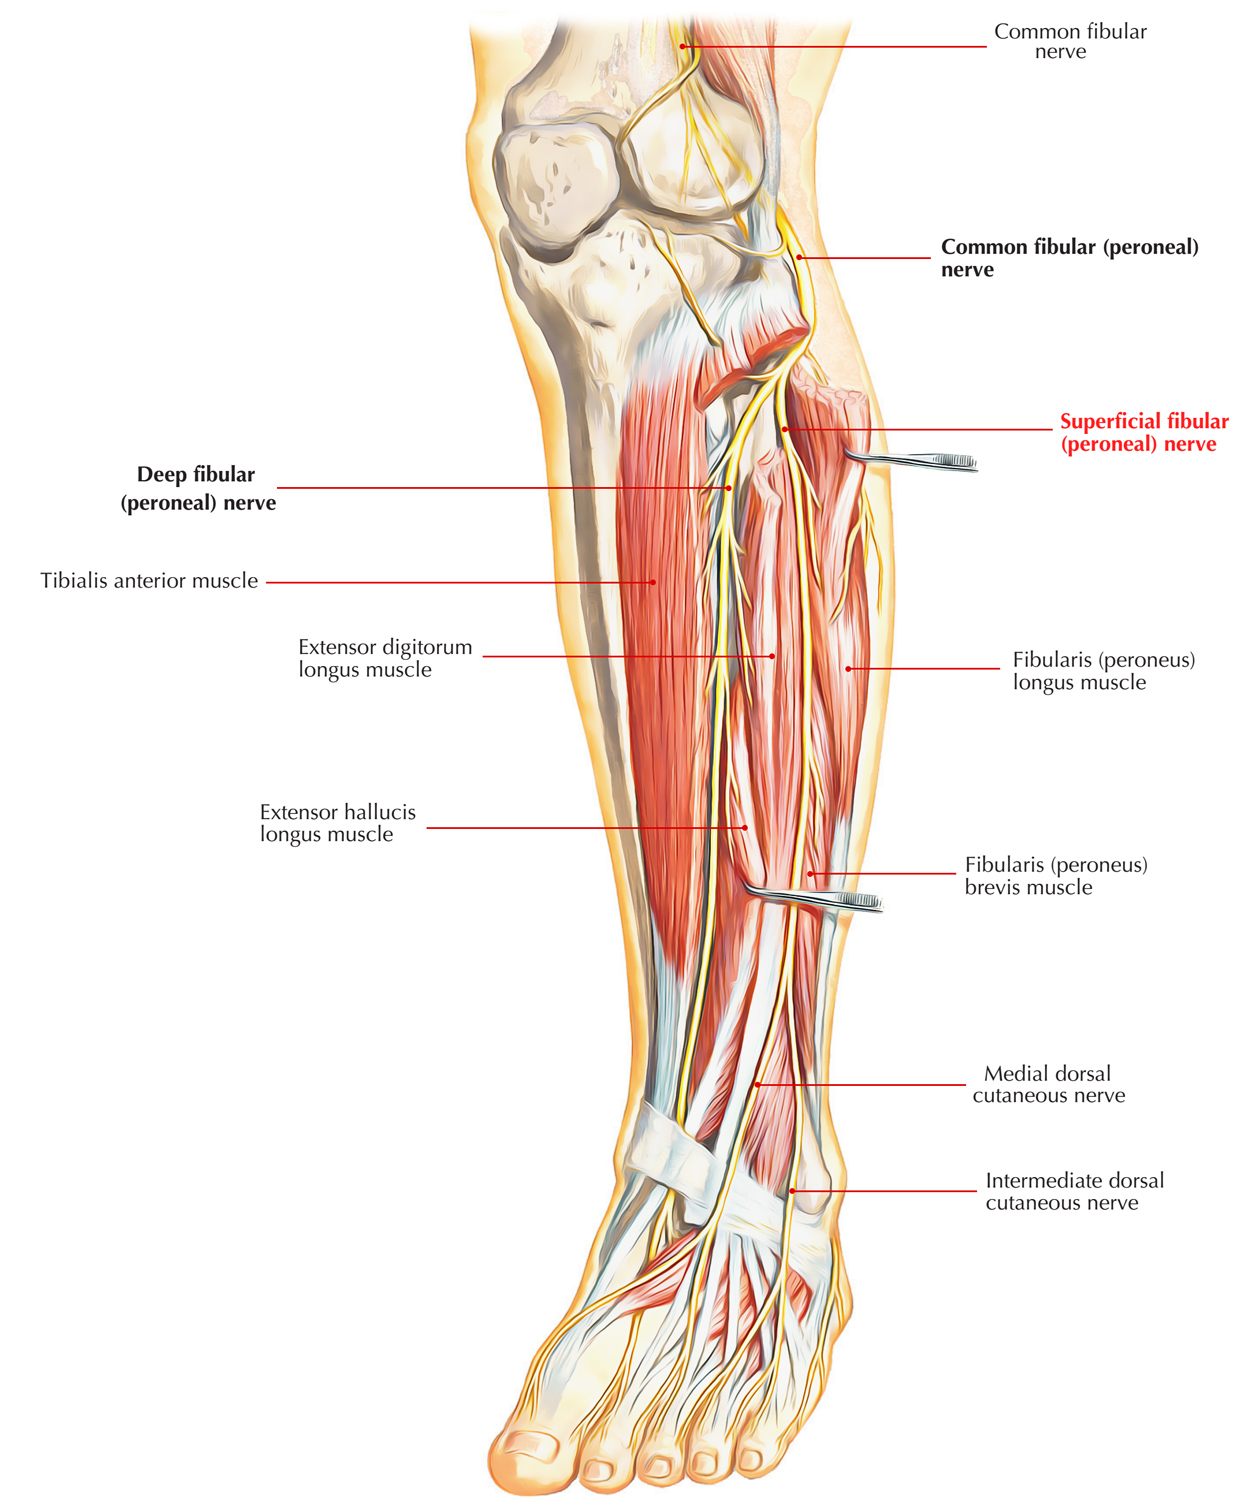 Nerves of Foot: Superficial Fibular Nerve